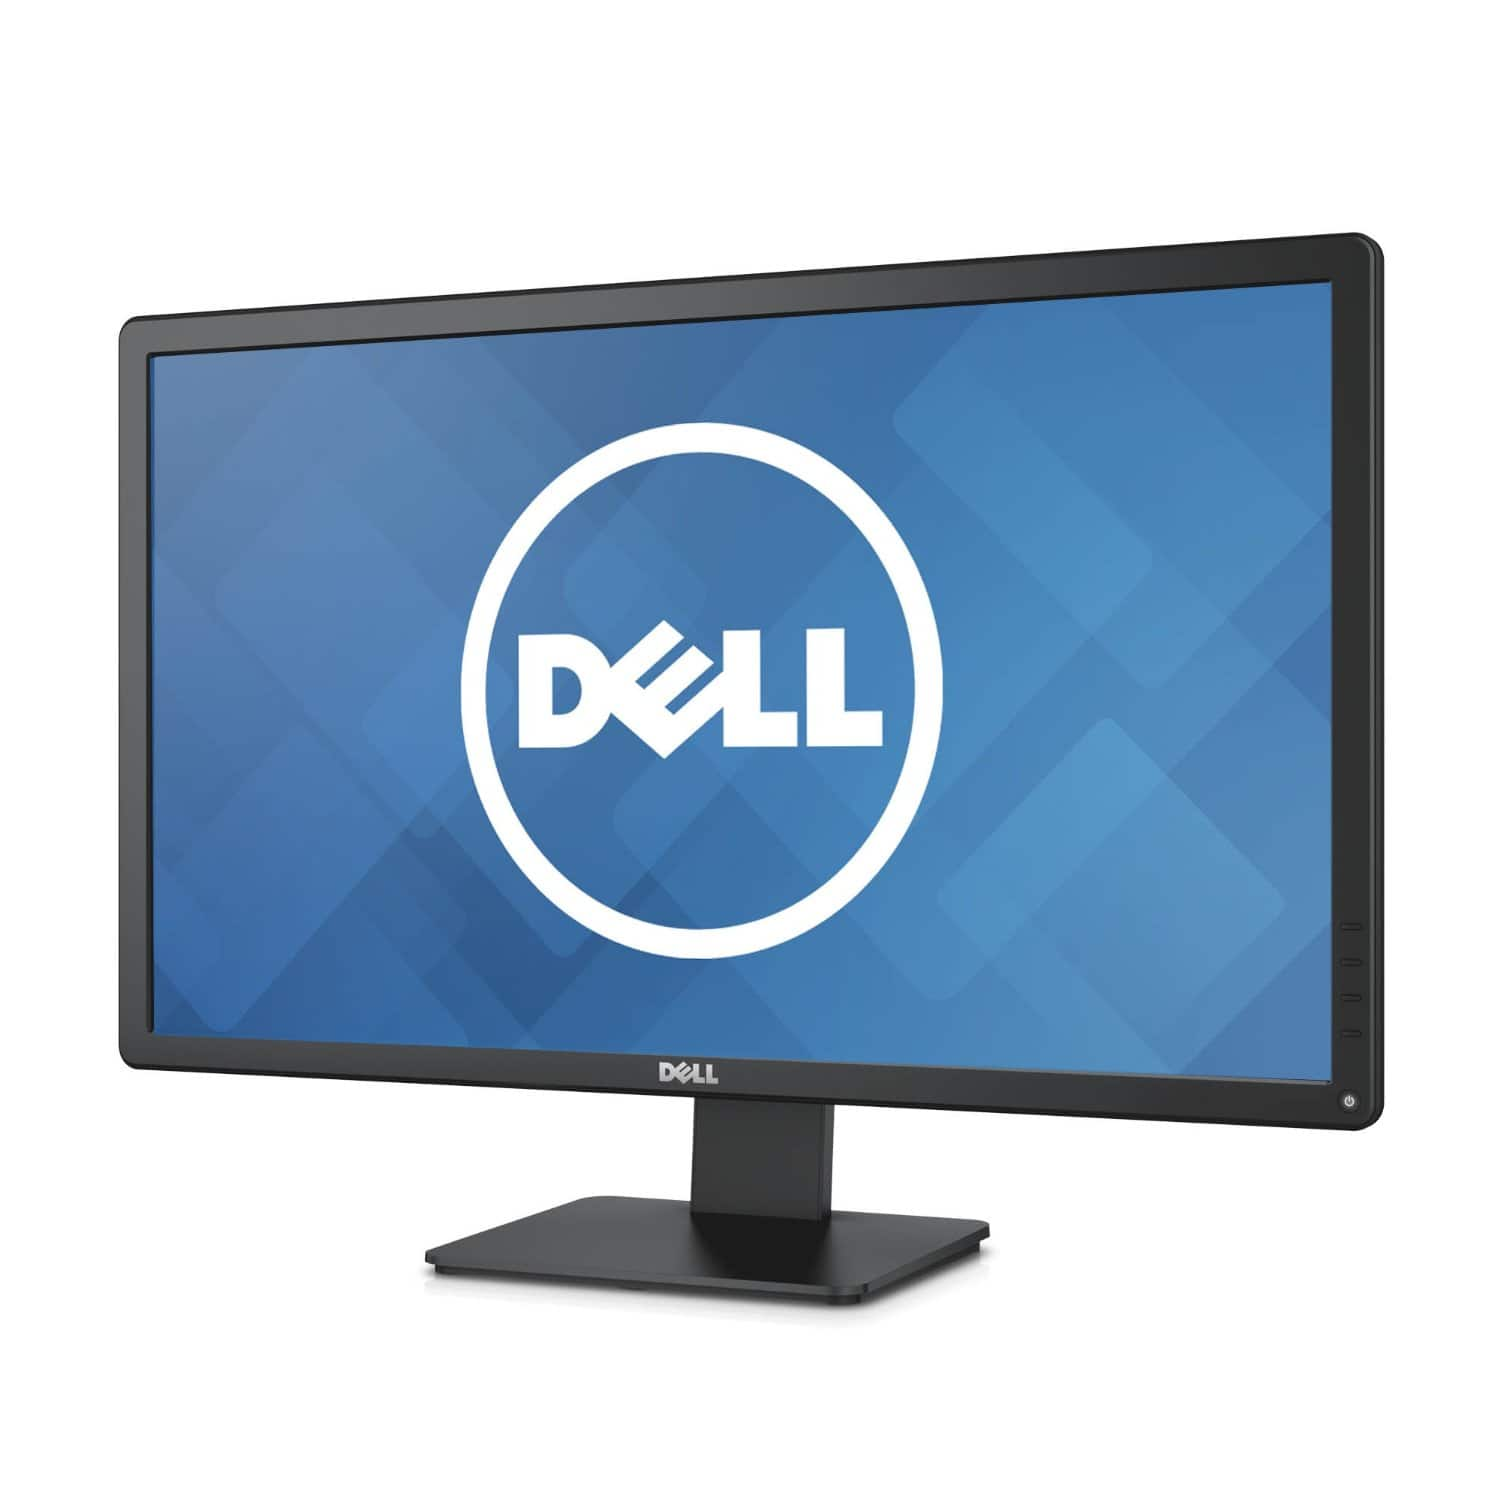 """27"""" Dell S2715H 1920x1080 IPS HDMI LED Monitor + $125 Dell eGift Card  $270 + Free Shipping"""